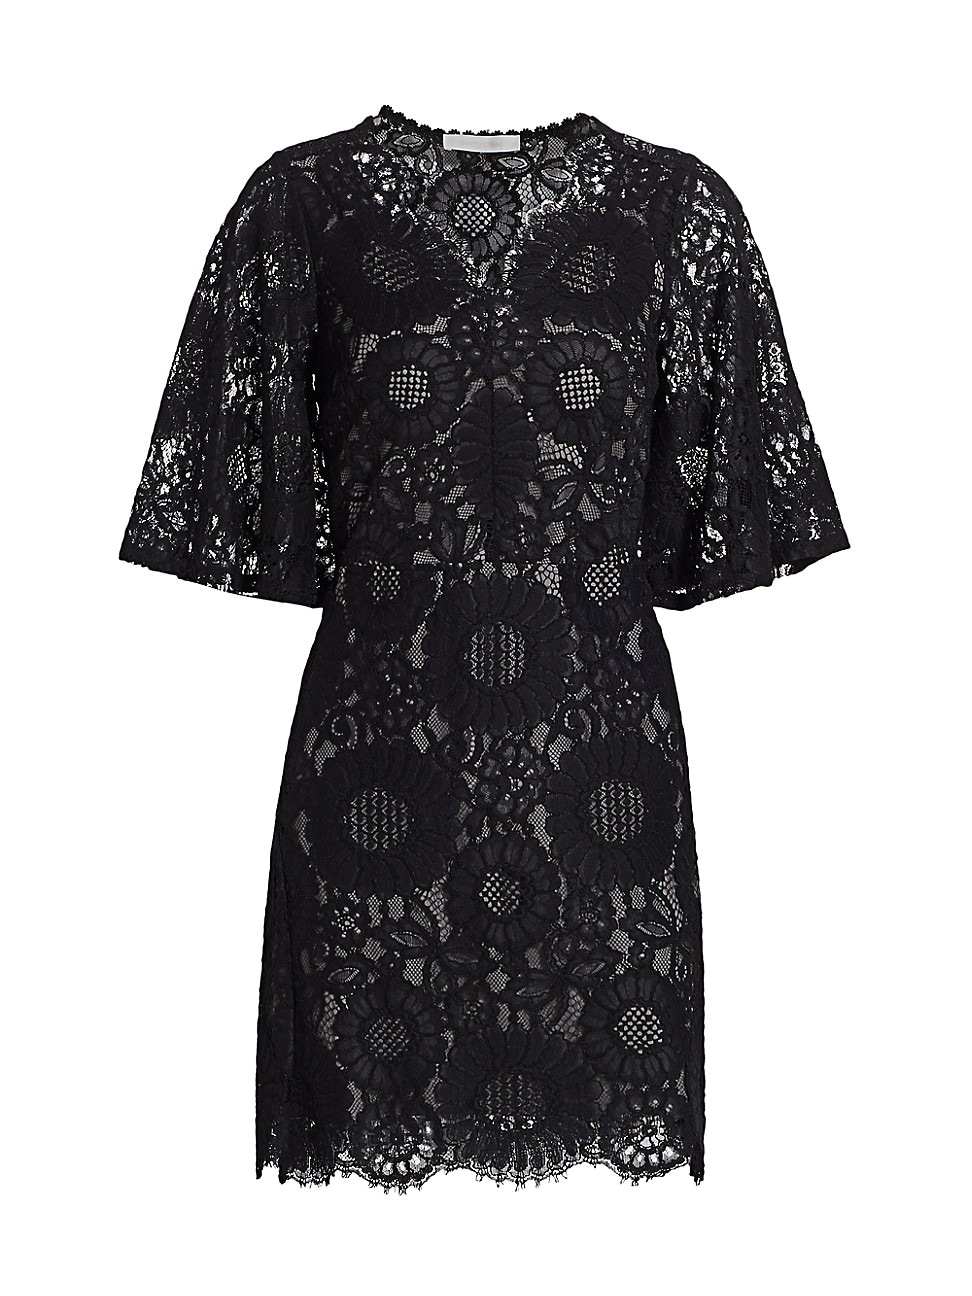 SEE BY CHLOÉ WOMEN'S SHORT-SLEEVE LACE MINI DRESS